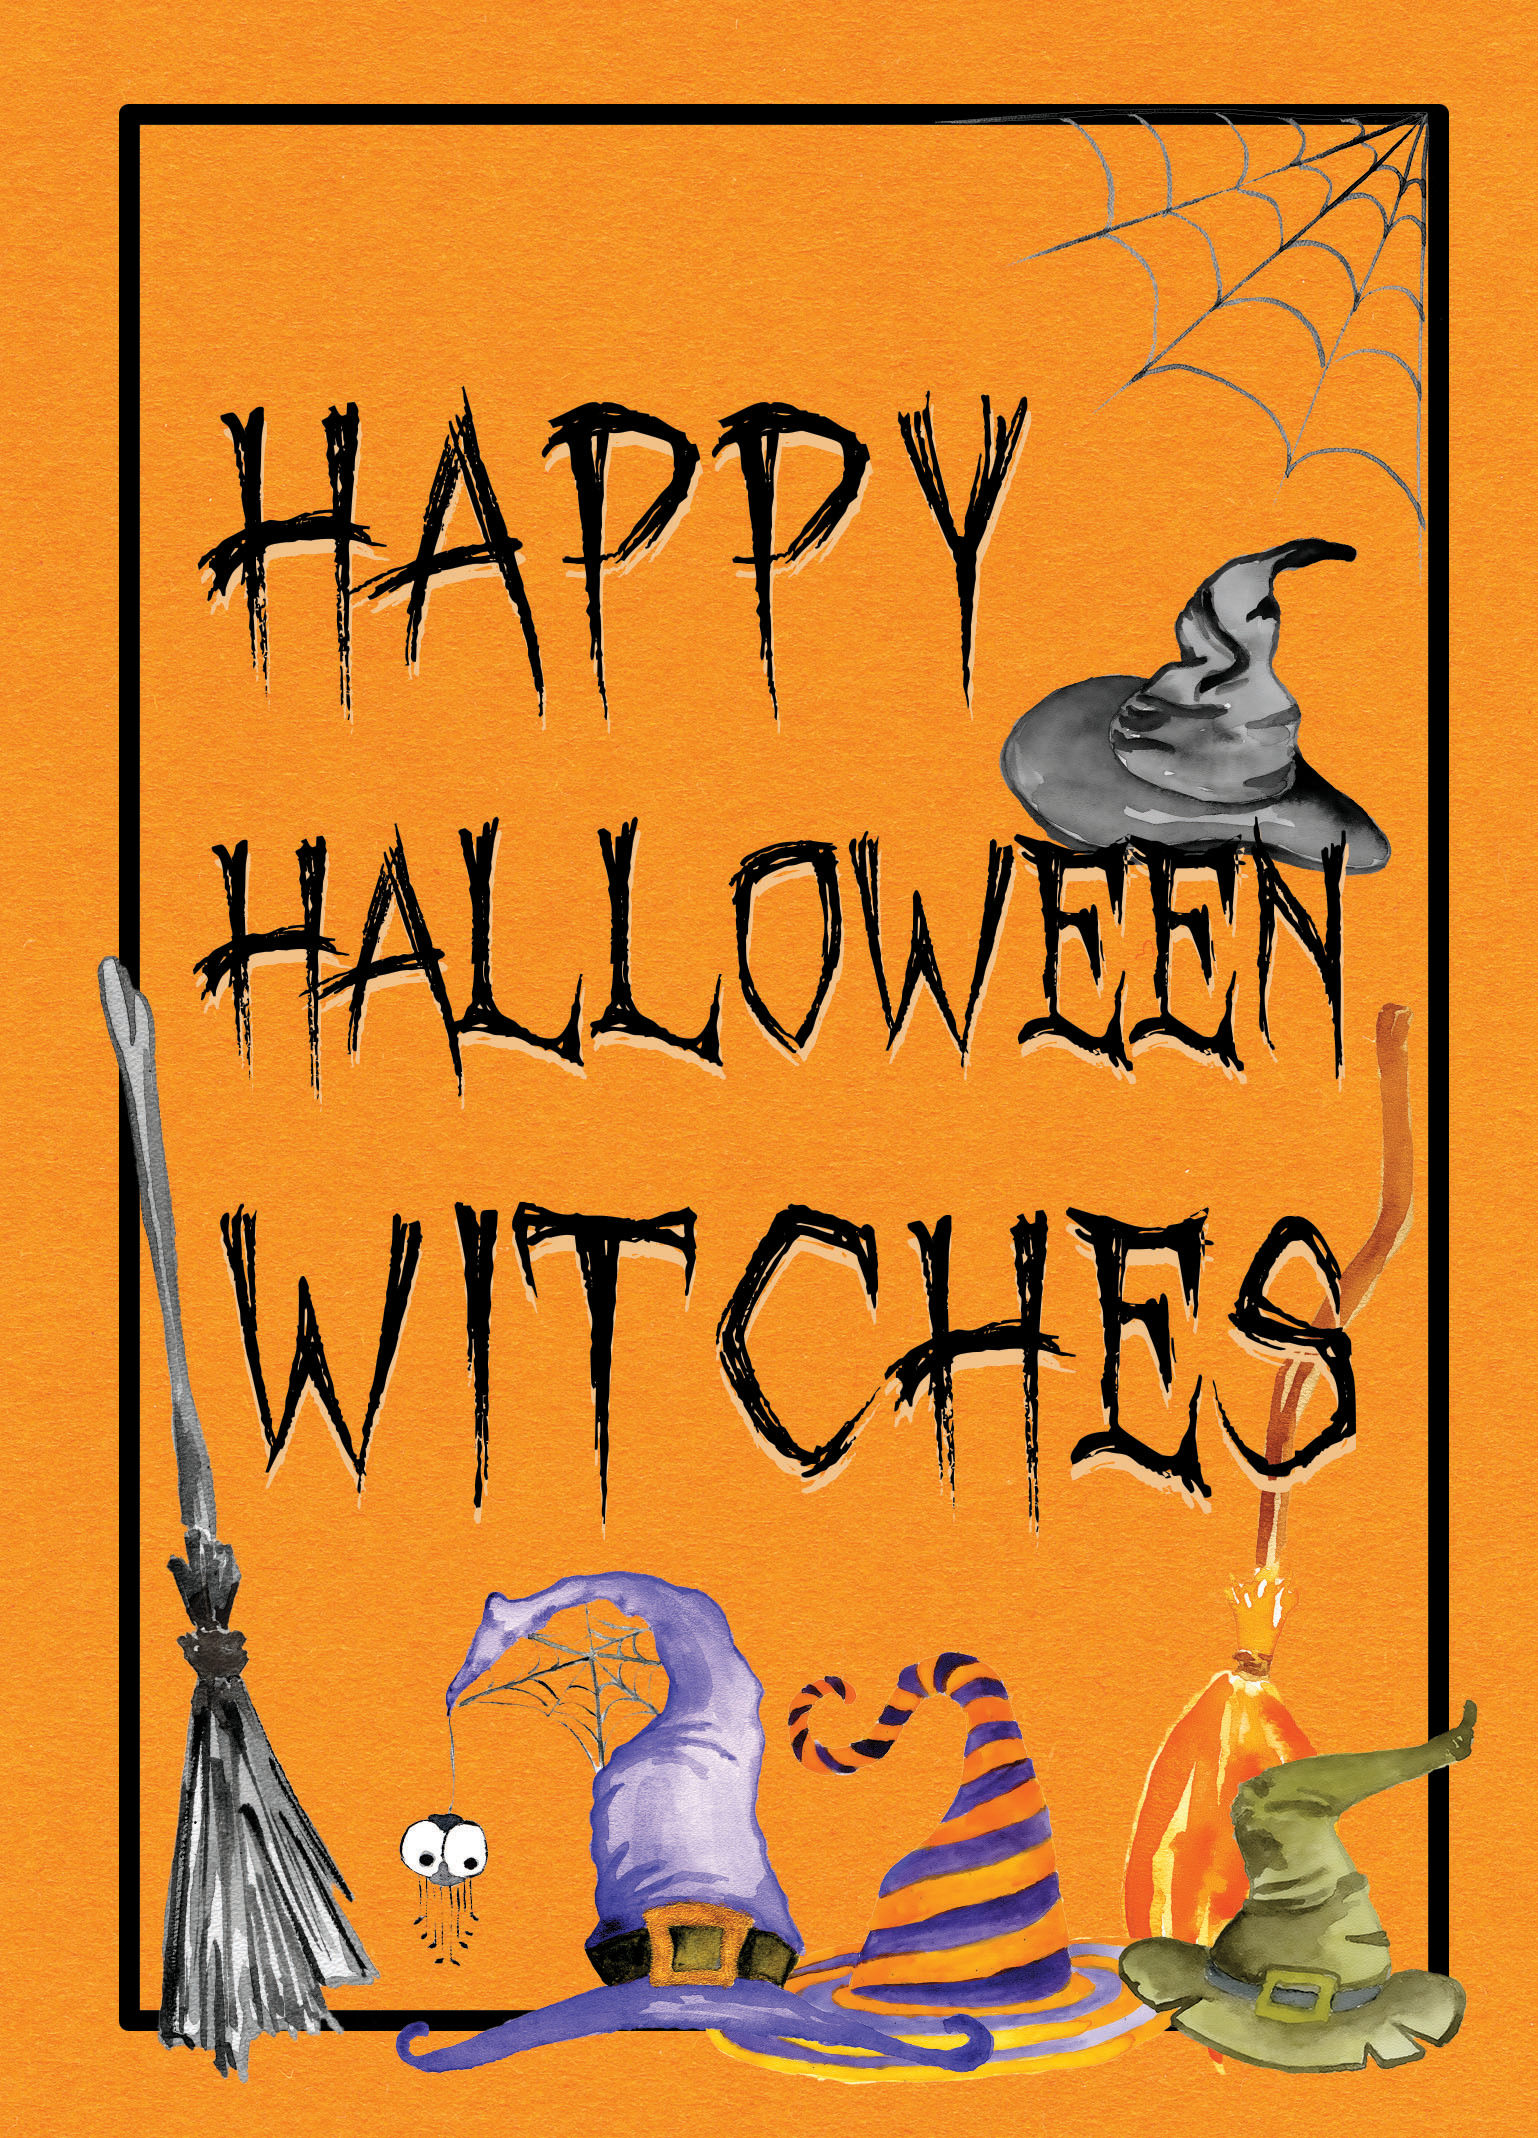 happy halloween witches instant download hi res printable print this digital download and